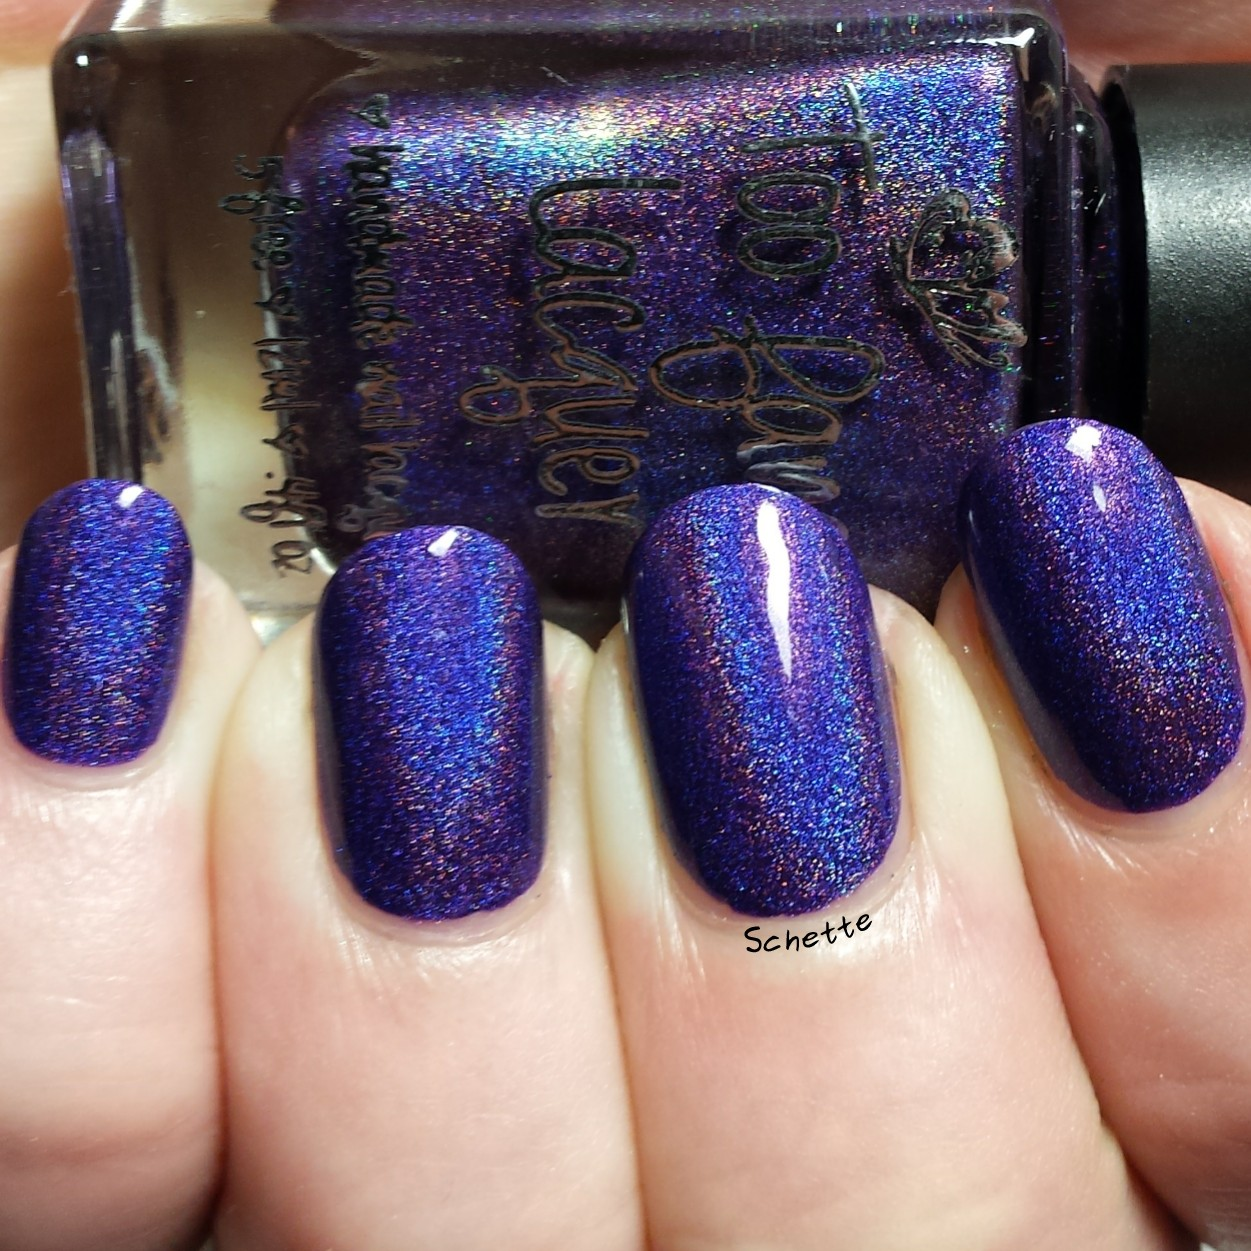 Too Fancy Lacquer - The Glow Within